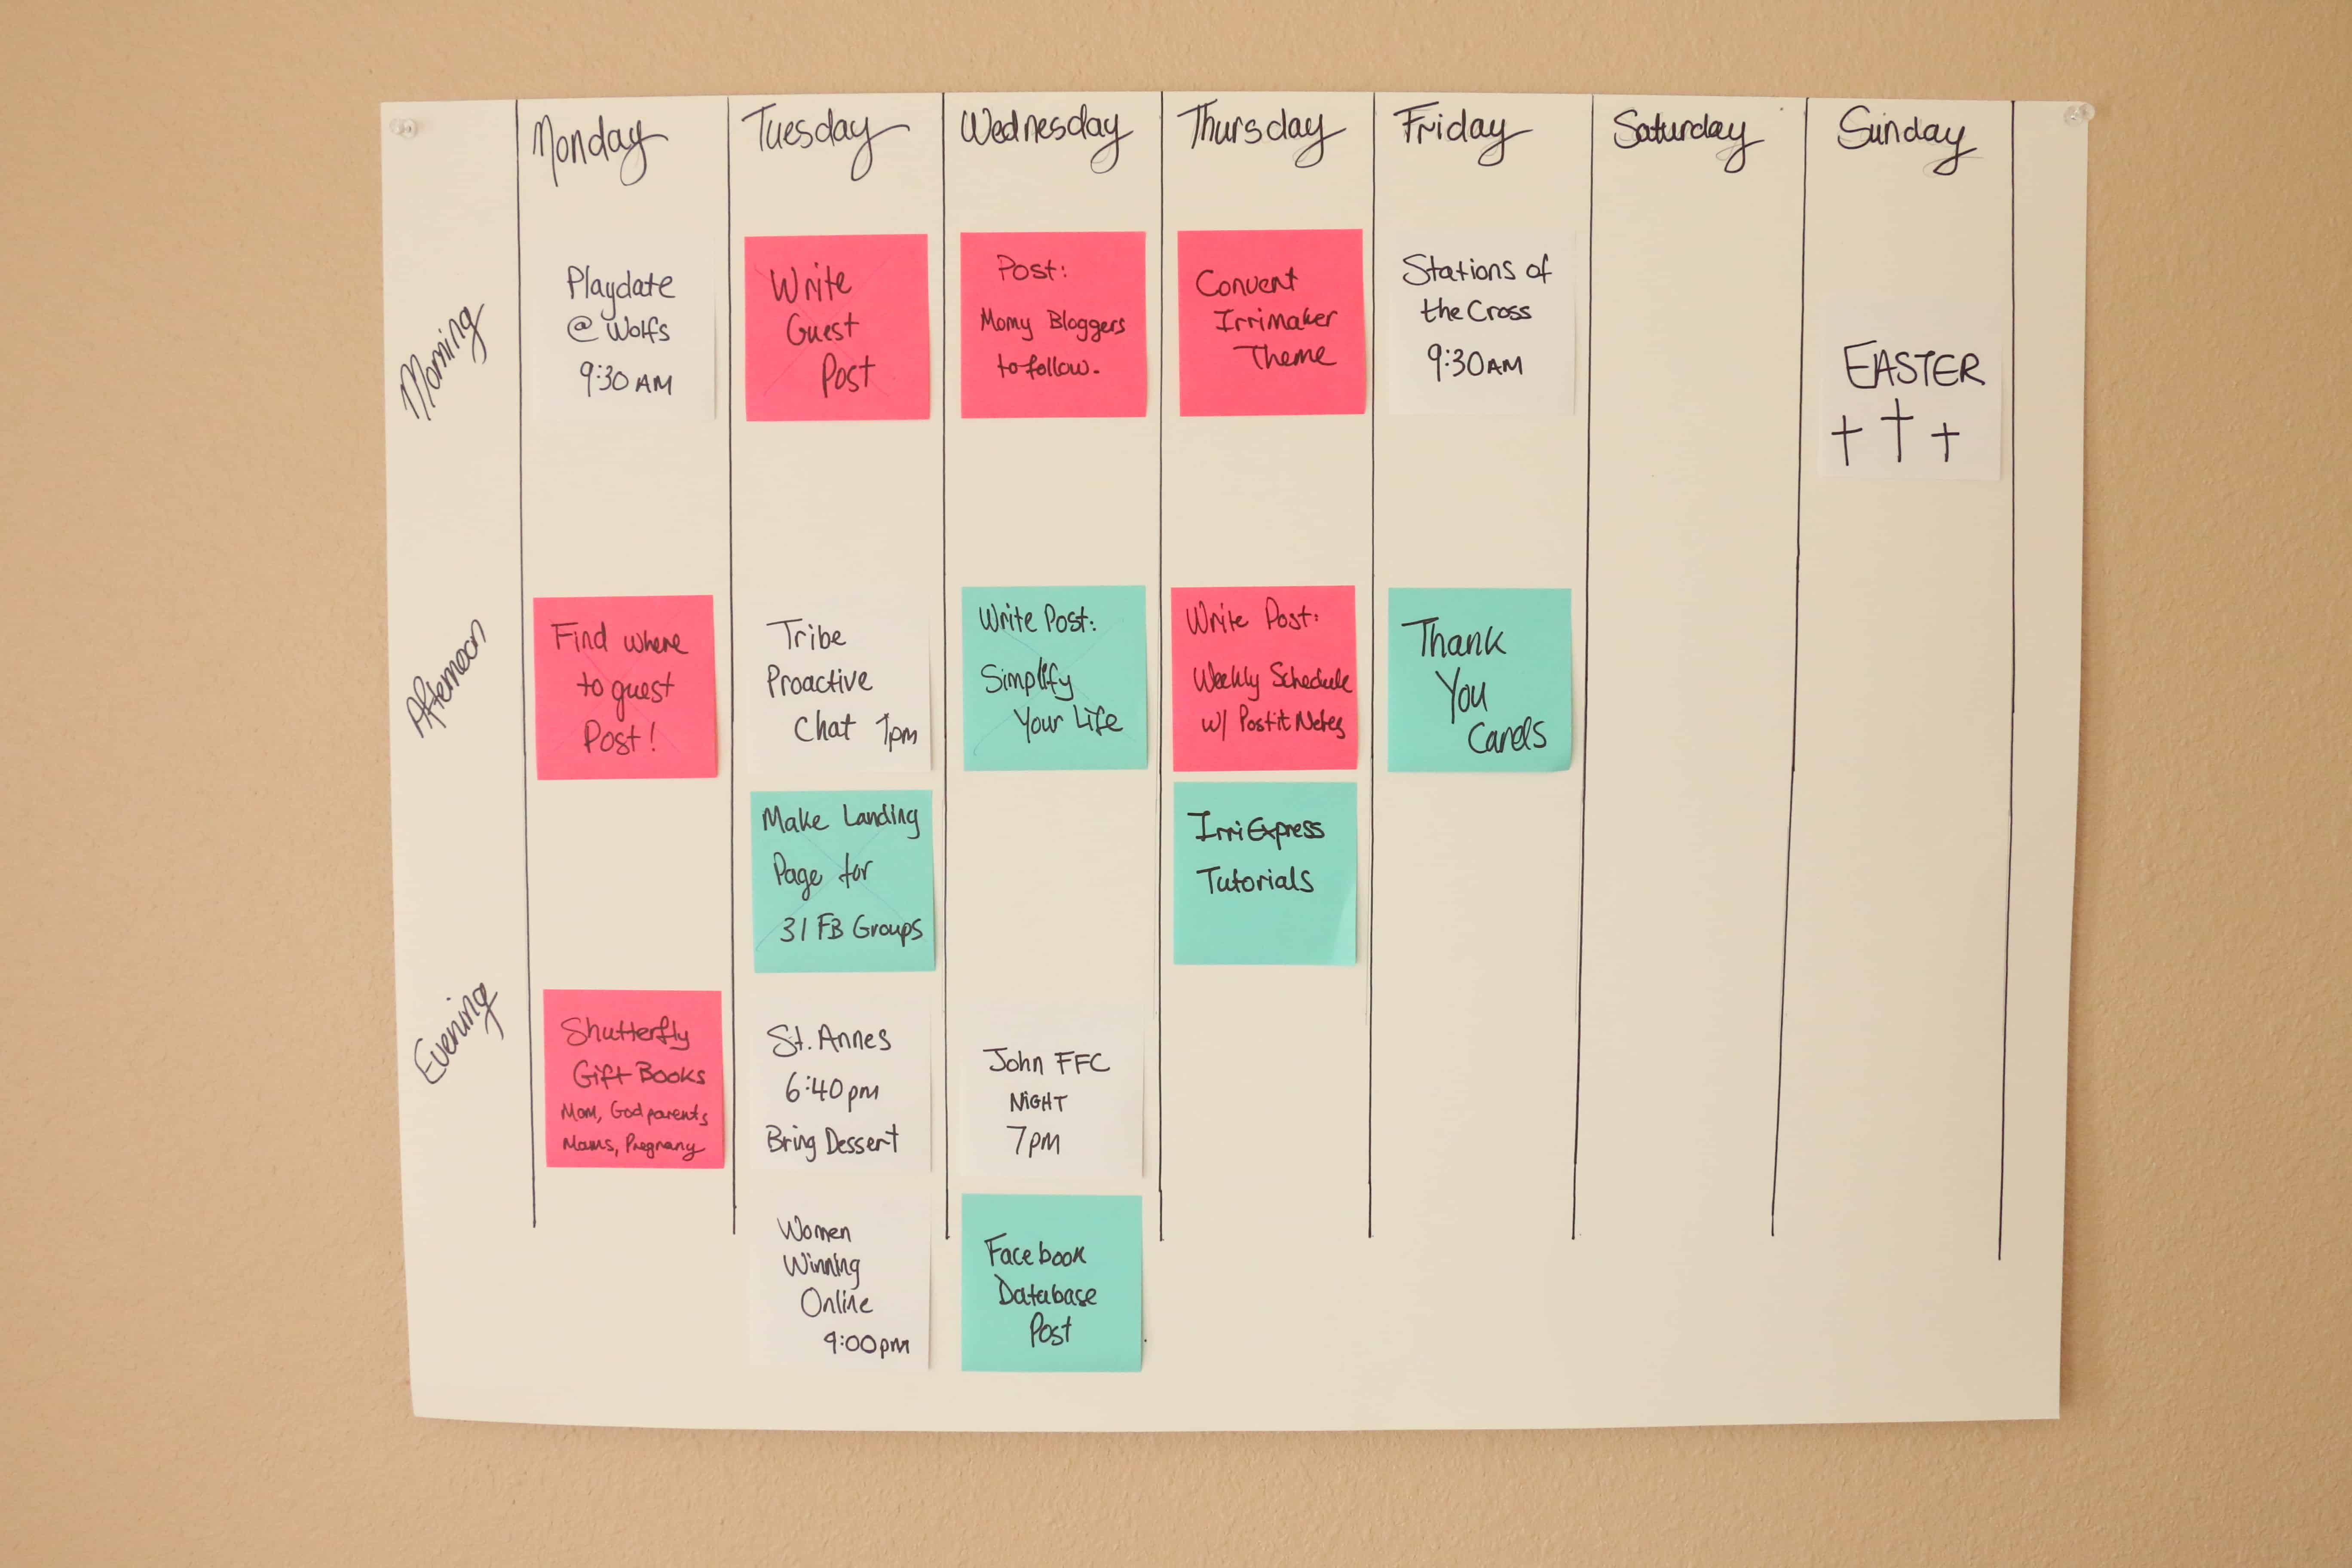 Super Simple Weekly Schedule to Get Stuff Done Post-it Notes Organize and Schedule my Life with Post it notes - Super Simple Hack! 5